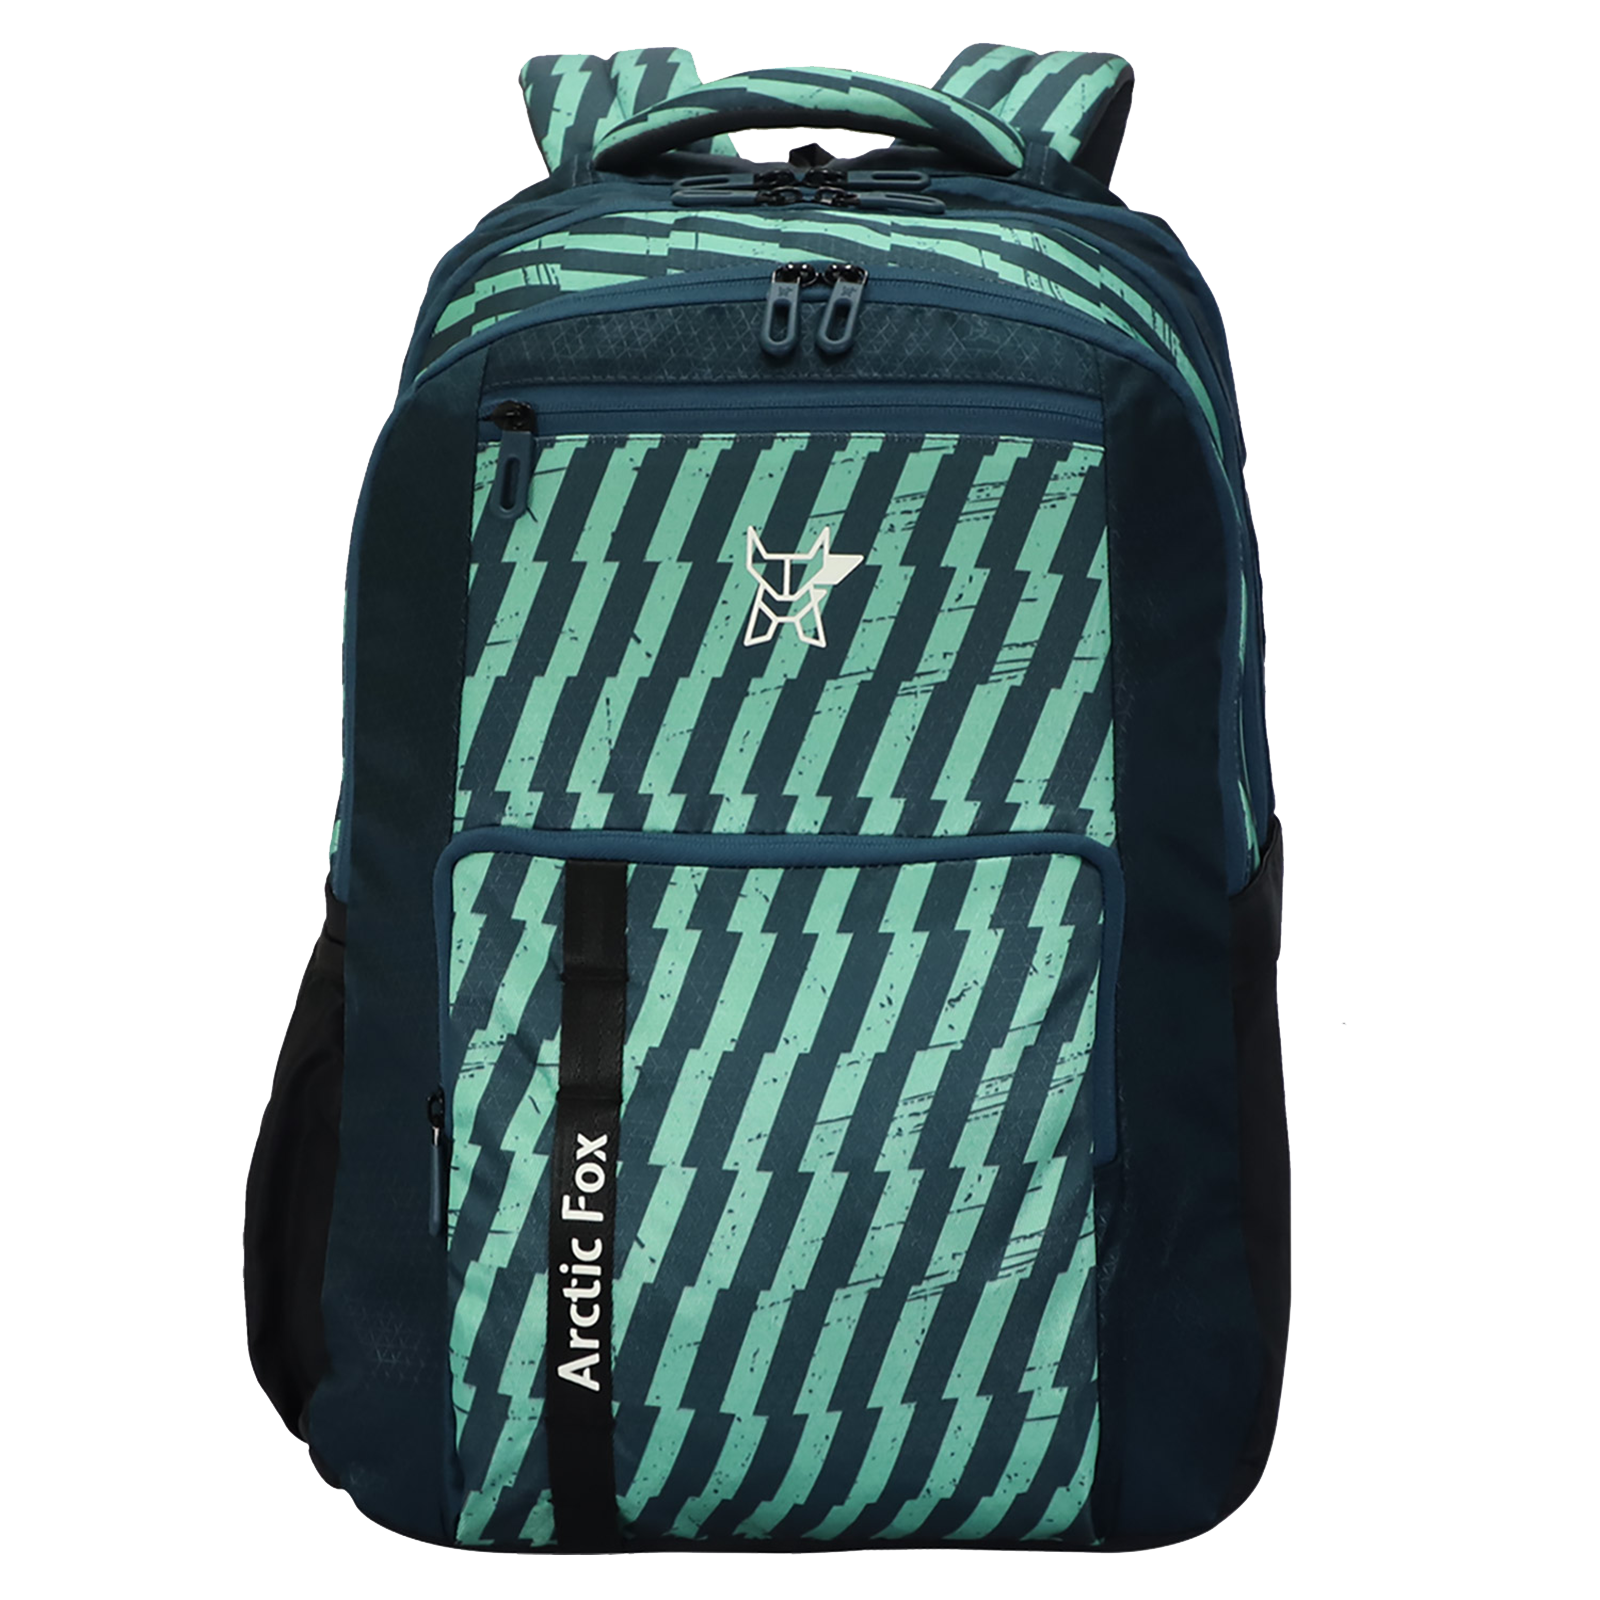 Arctic Fox Rugged 36 Litres Polyester Backpack (Water Repellent Fabric, FJUBPKGZZON041036, Green)_1